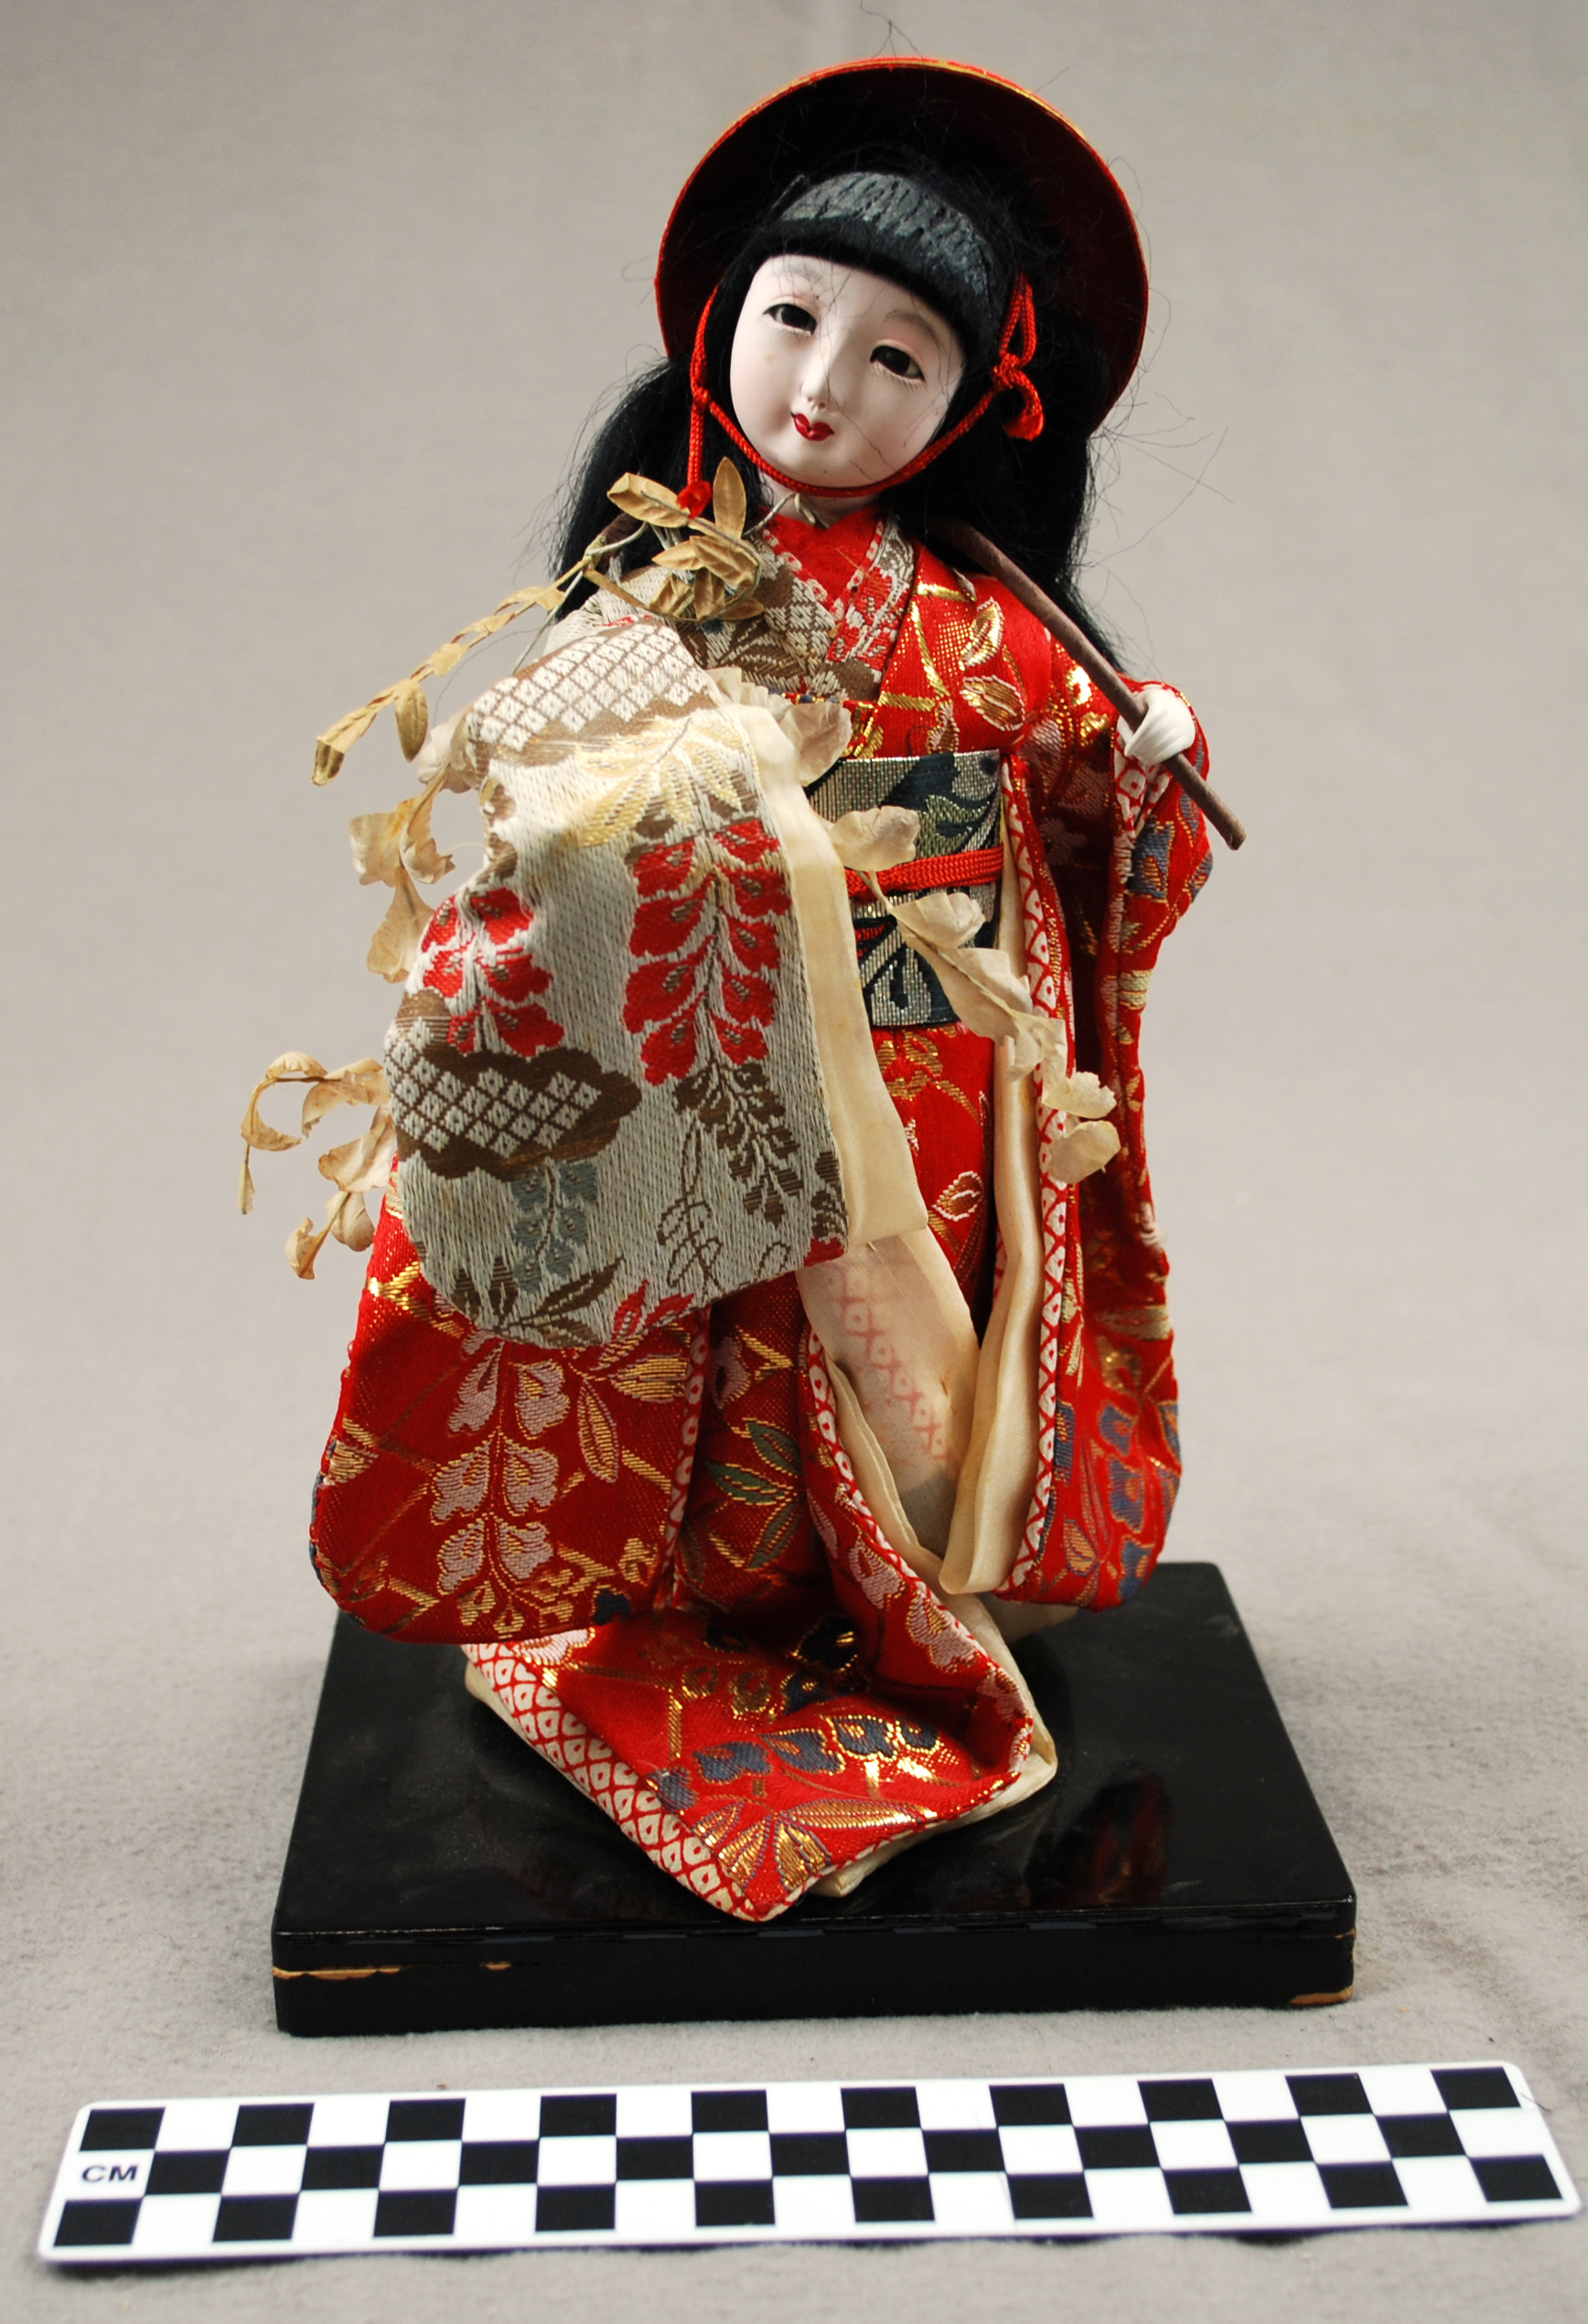 Object: Doll | UTSA Institute Of Texan Cultures